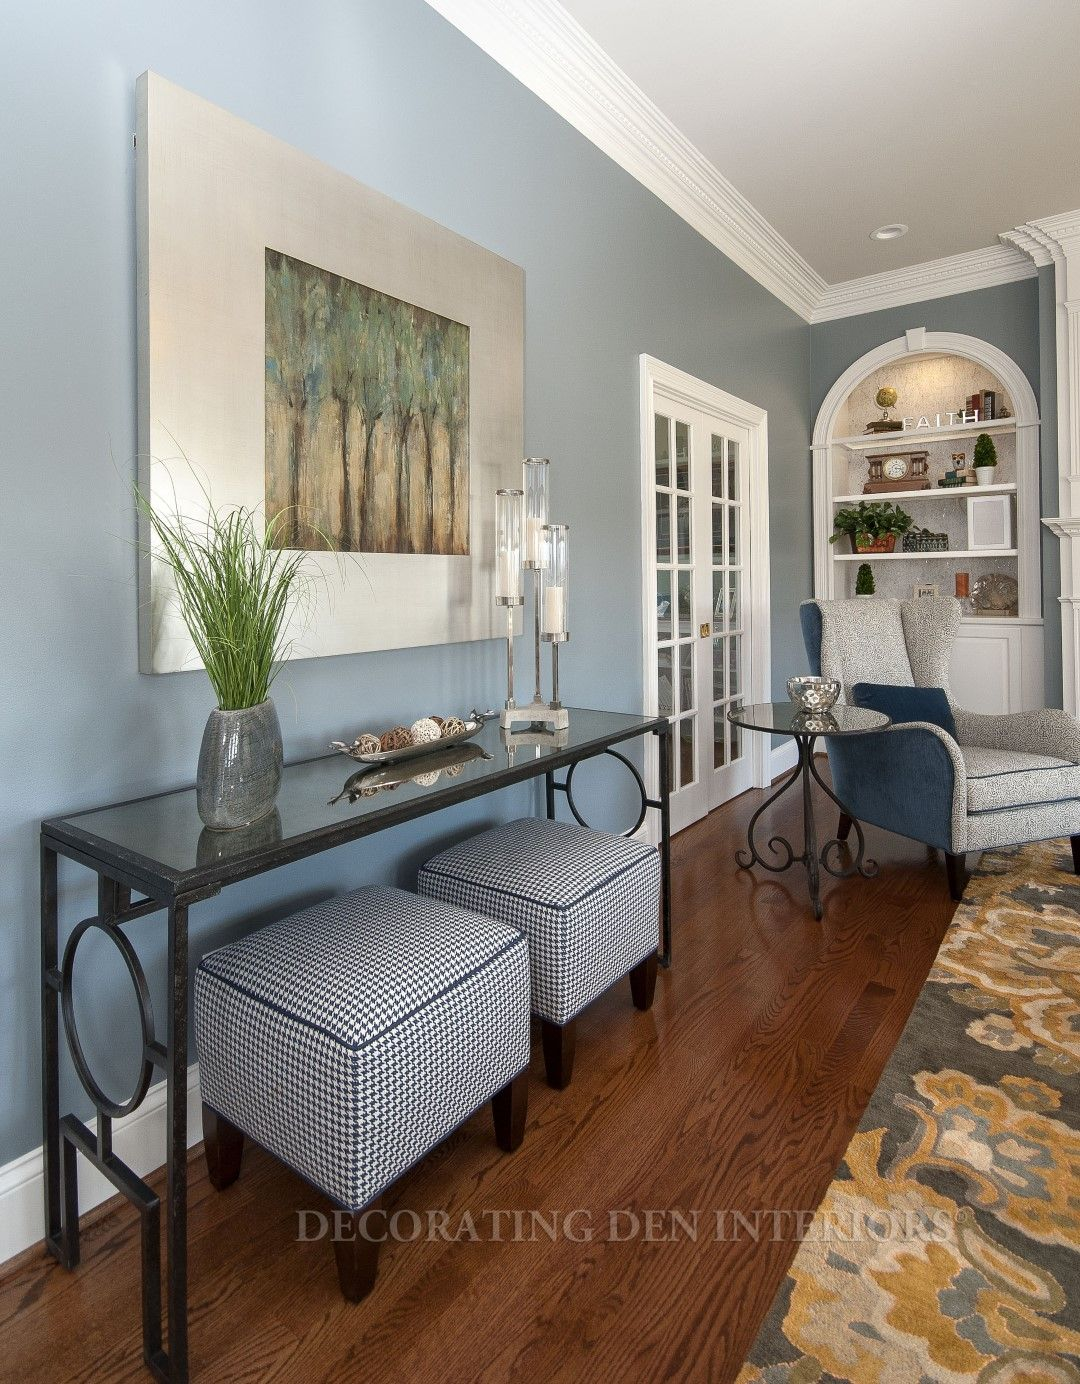 Free Room Design: Family Room Designs By Decorating Den Interiors. Want This